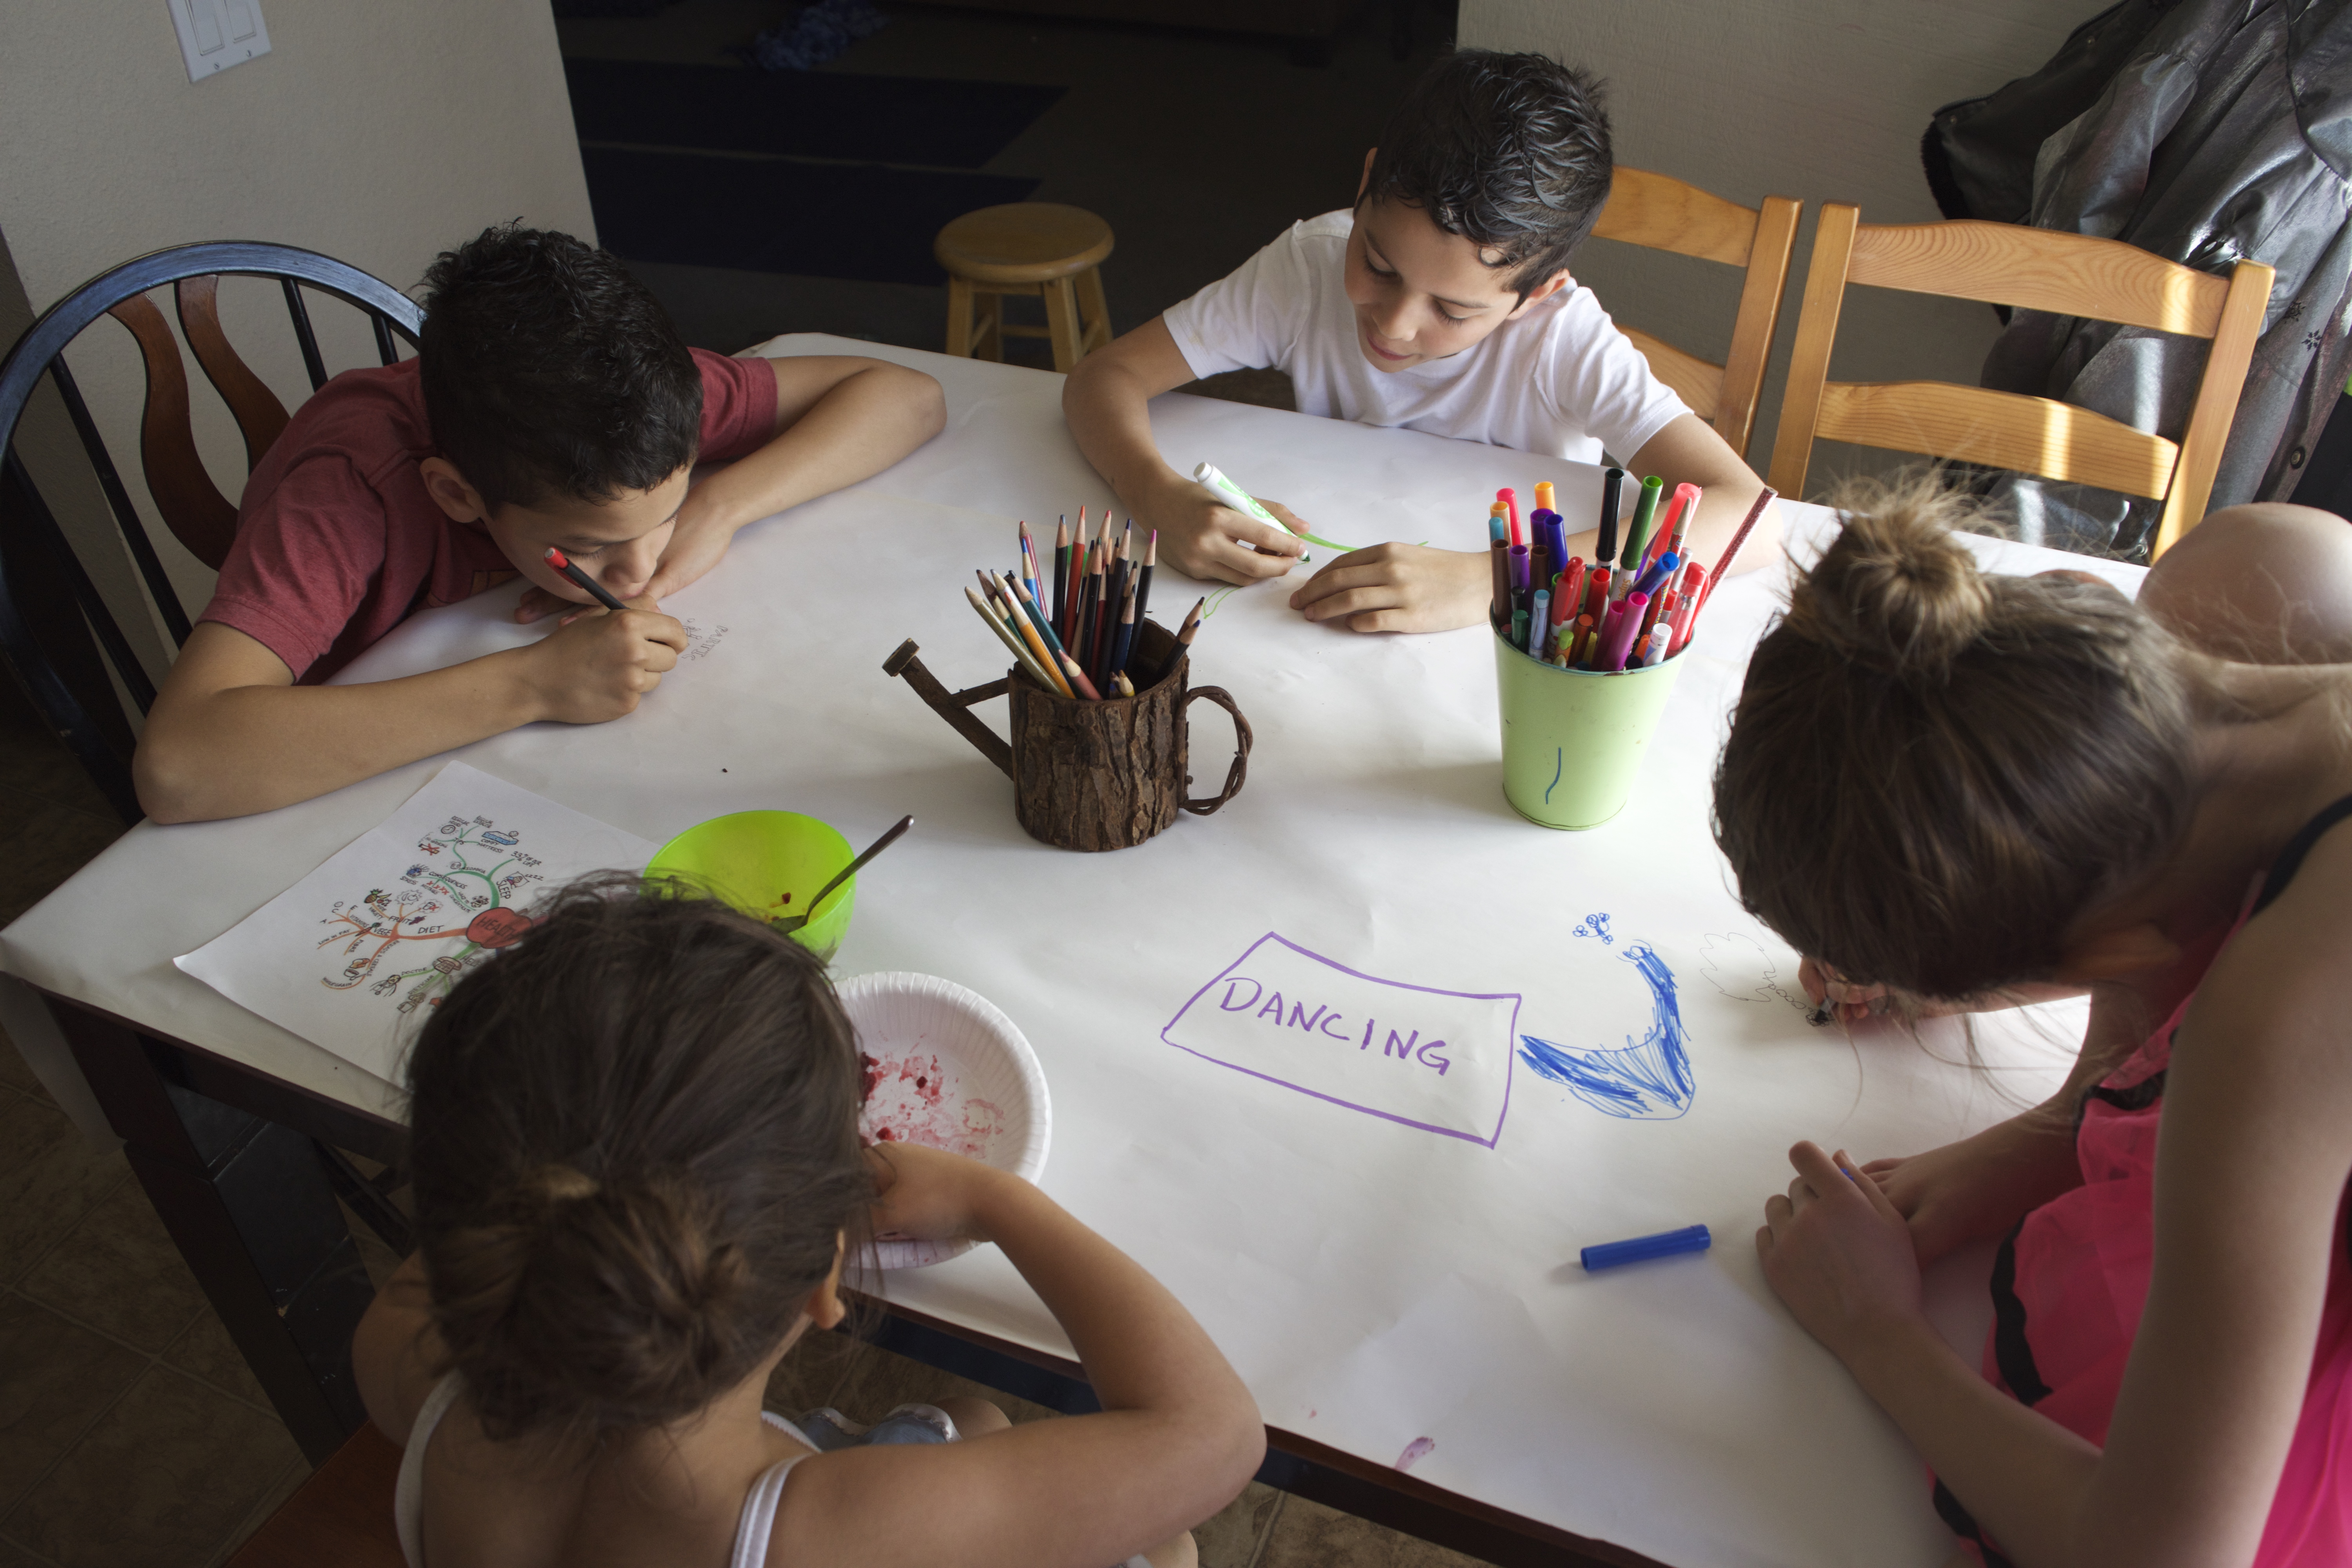 Mind mapping is a creative way to look at and organize ideas, and all ages can do it!